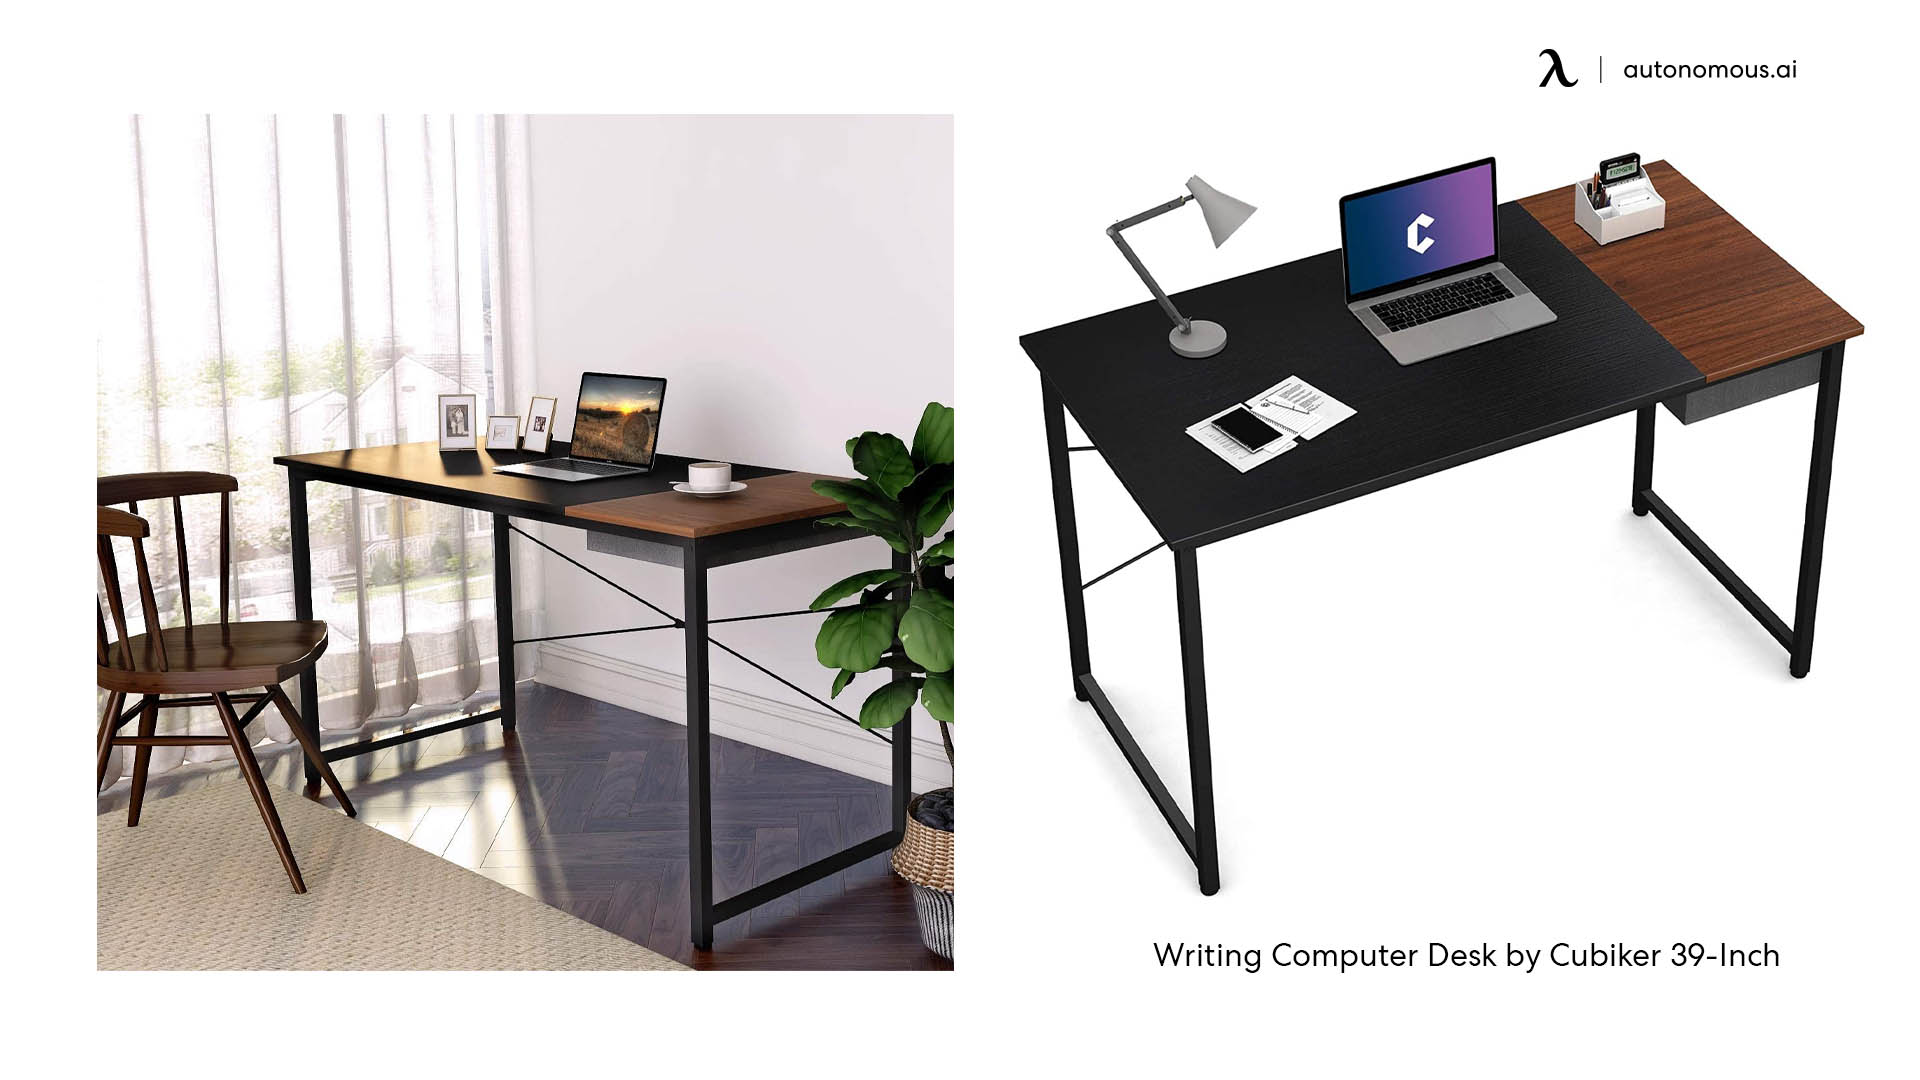 Writing Computer Desk by Cubiker 39-Inch